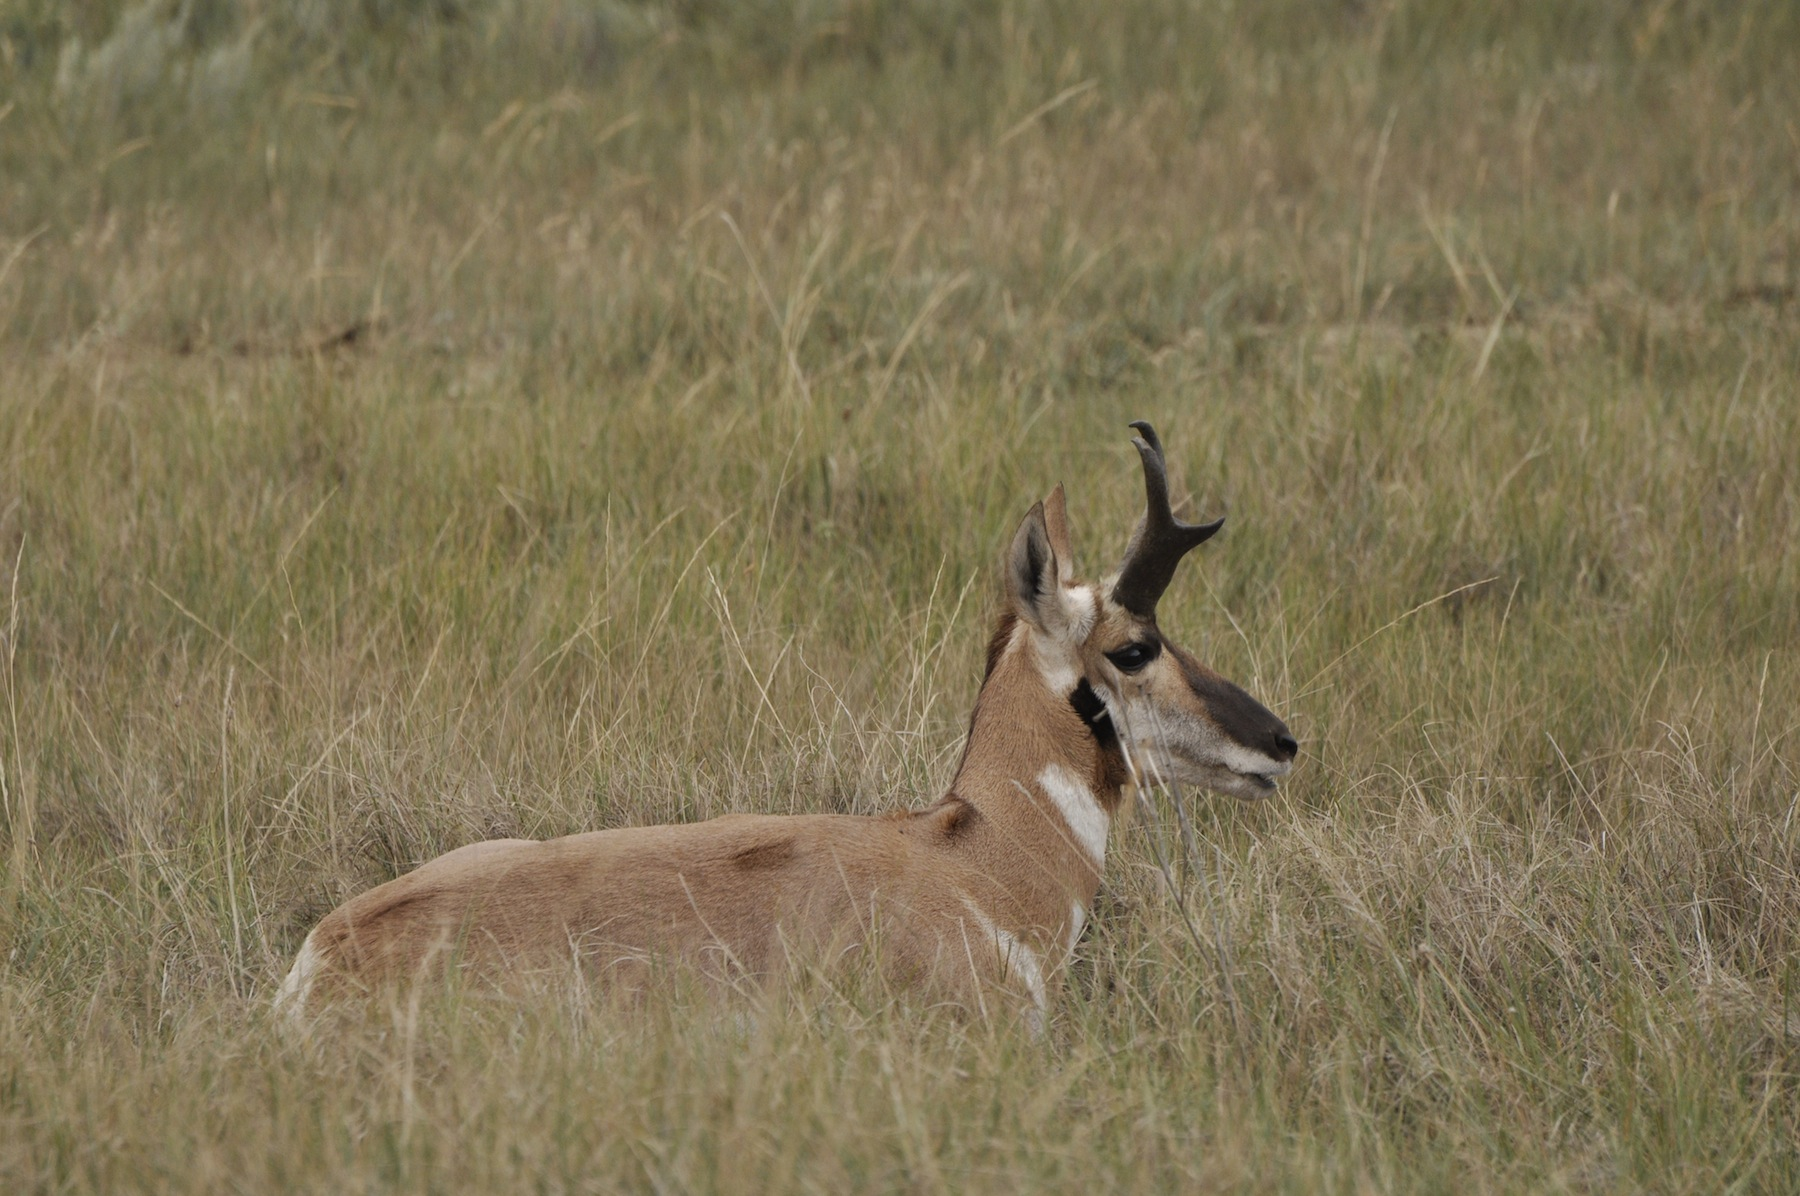 //www.bowhunter.com/files/antelope-the-hard-way-10-ways-to-increase-your-spot-and-stalk-pronghorn-success/wait-for-it-wait-for-it.jpg